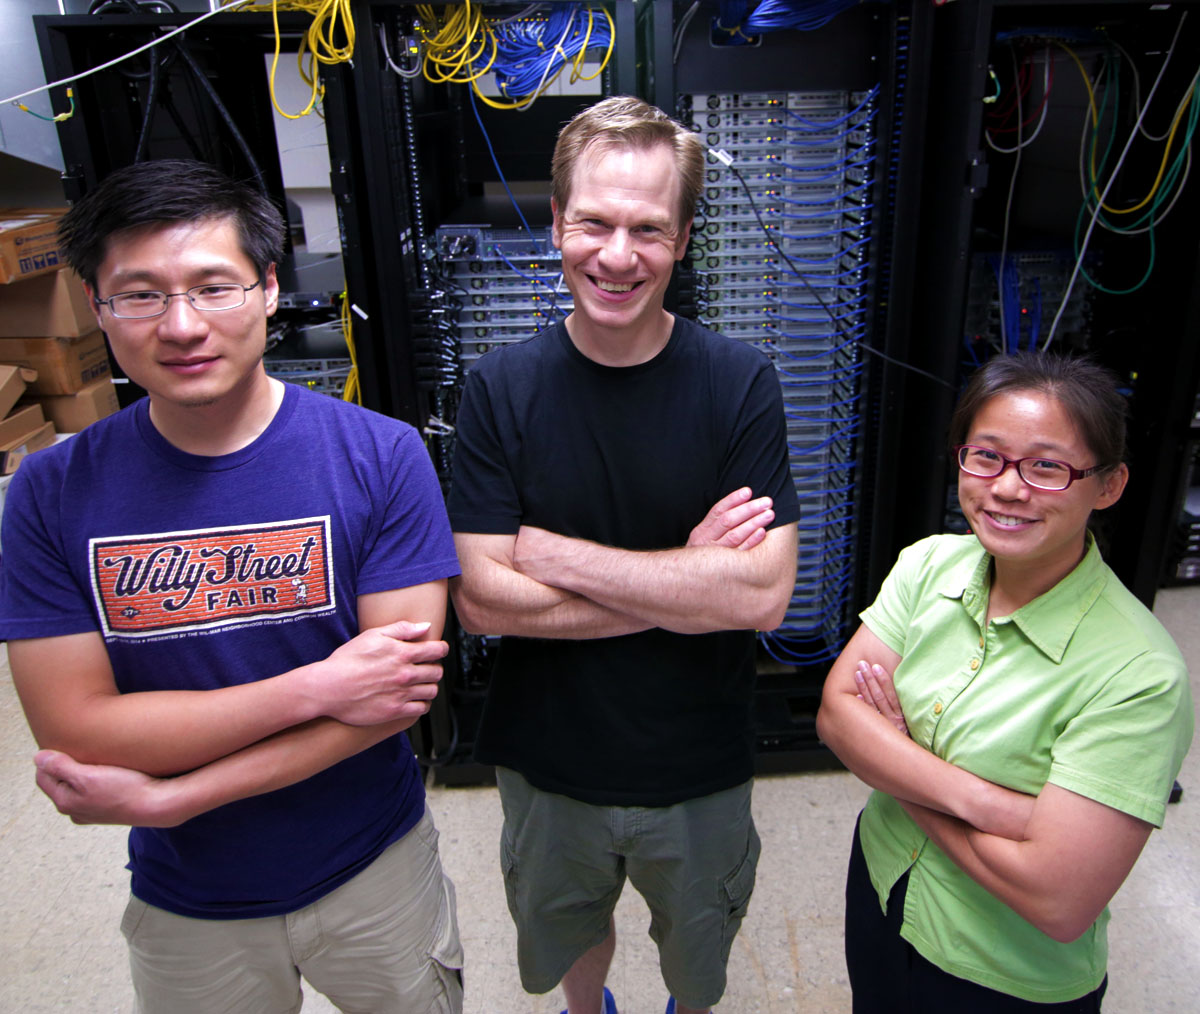 The paper's authors are, from left, Henry Wu, Dane Morgan and Tam Mayeshiba.